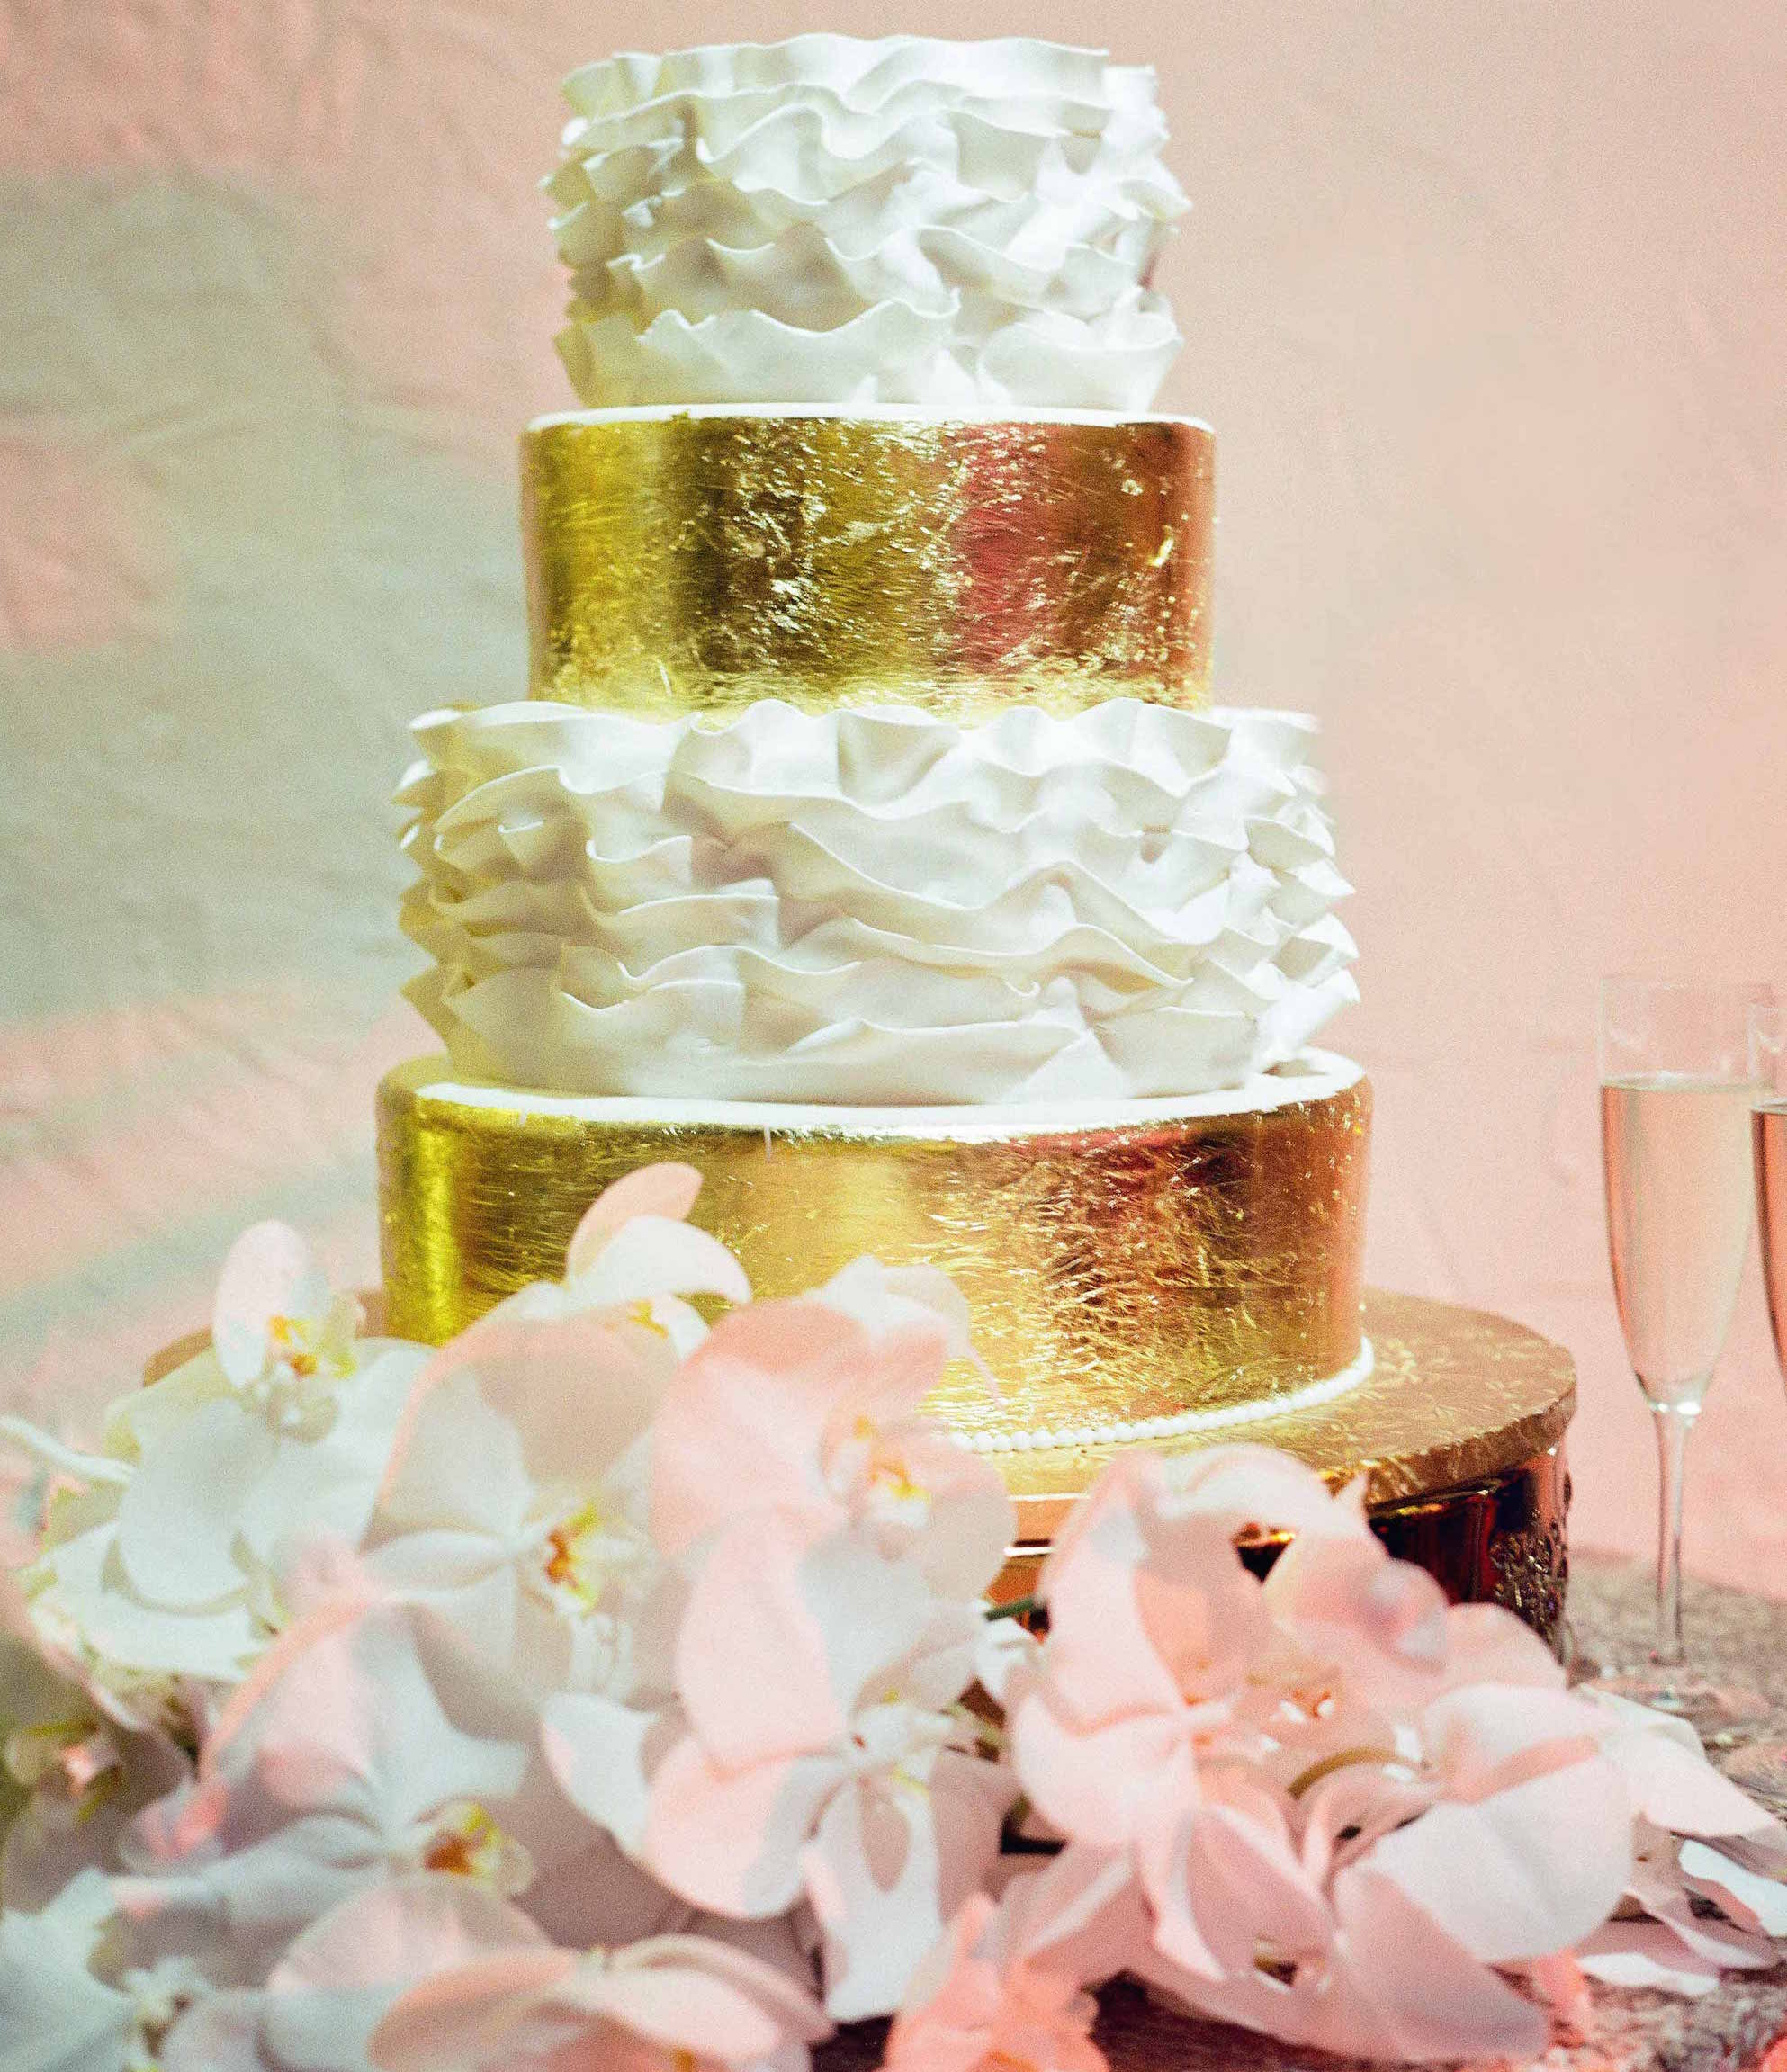 White ruffle and gold foil wedding cake